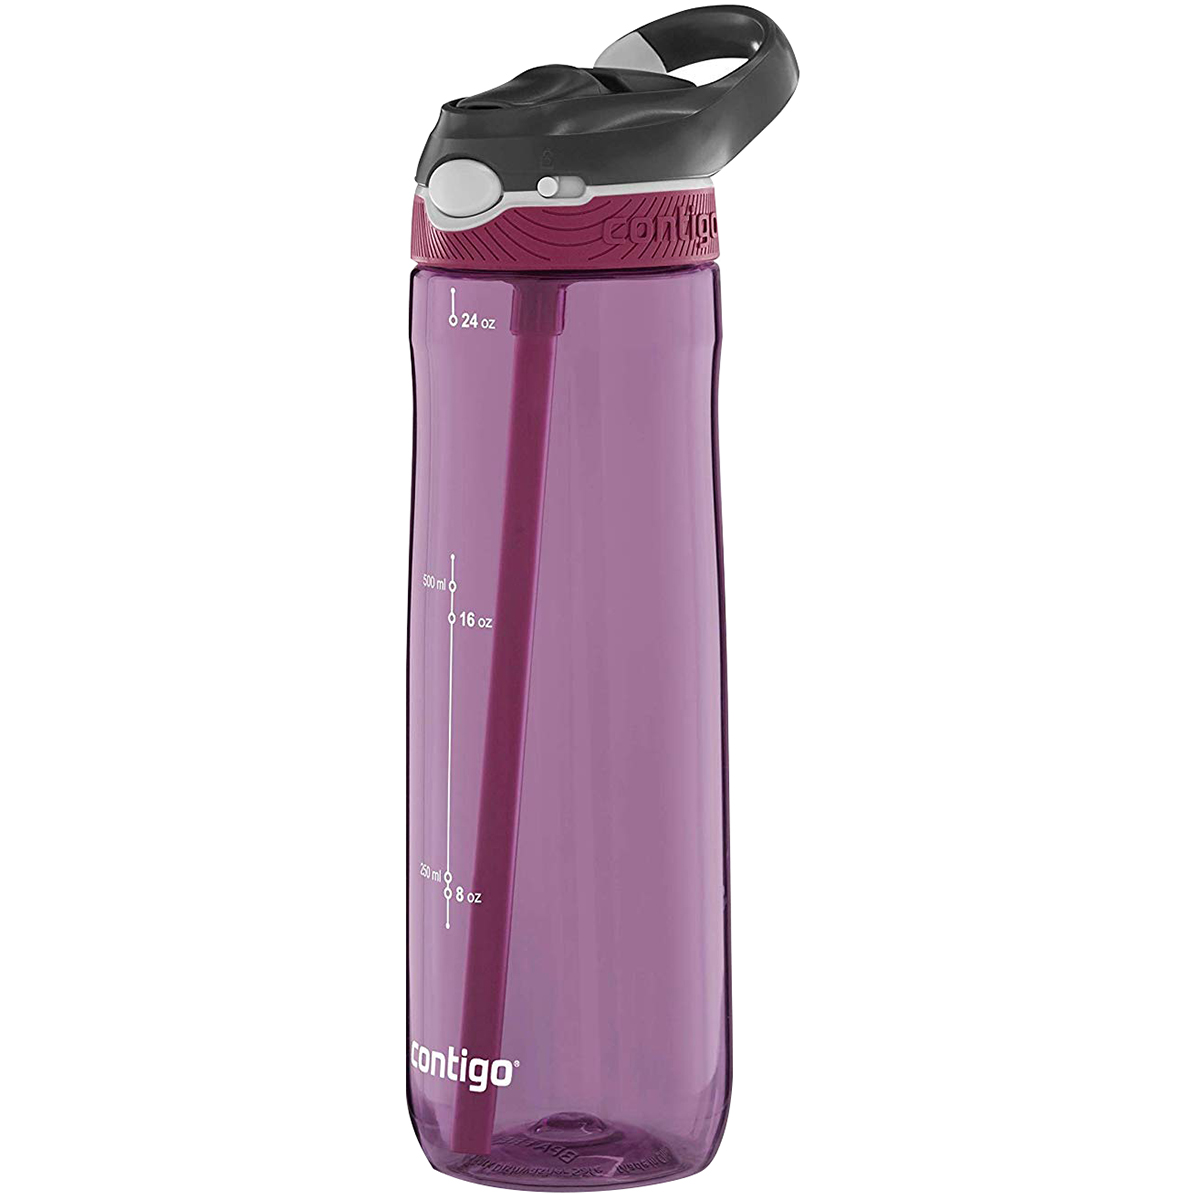 Contigo-24-oz-Ashland-Autospout-Water-Bottle miniature 19